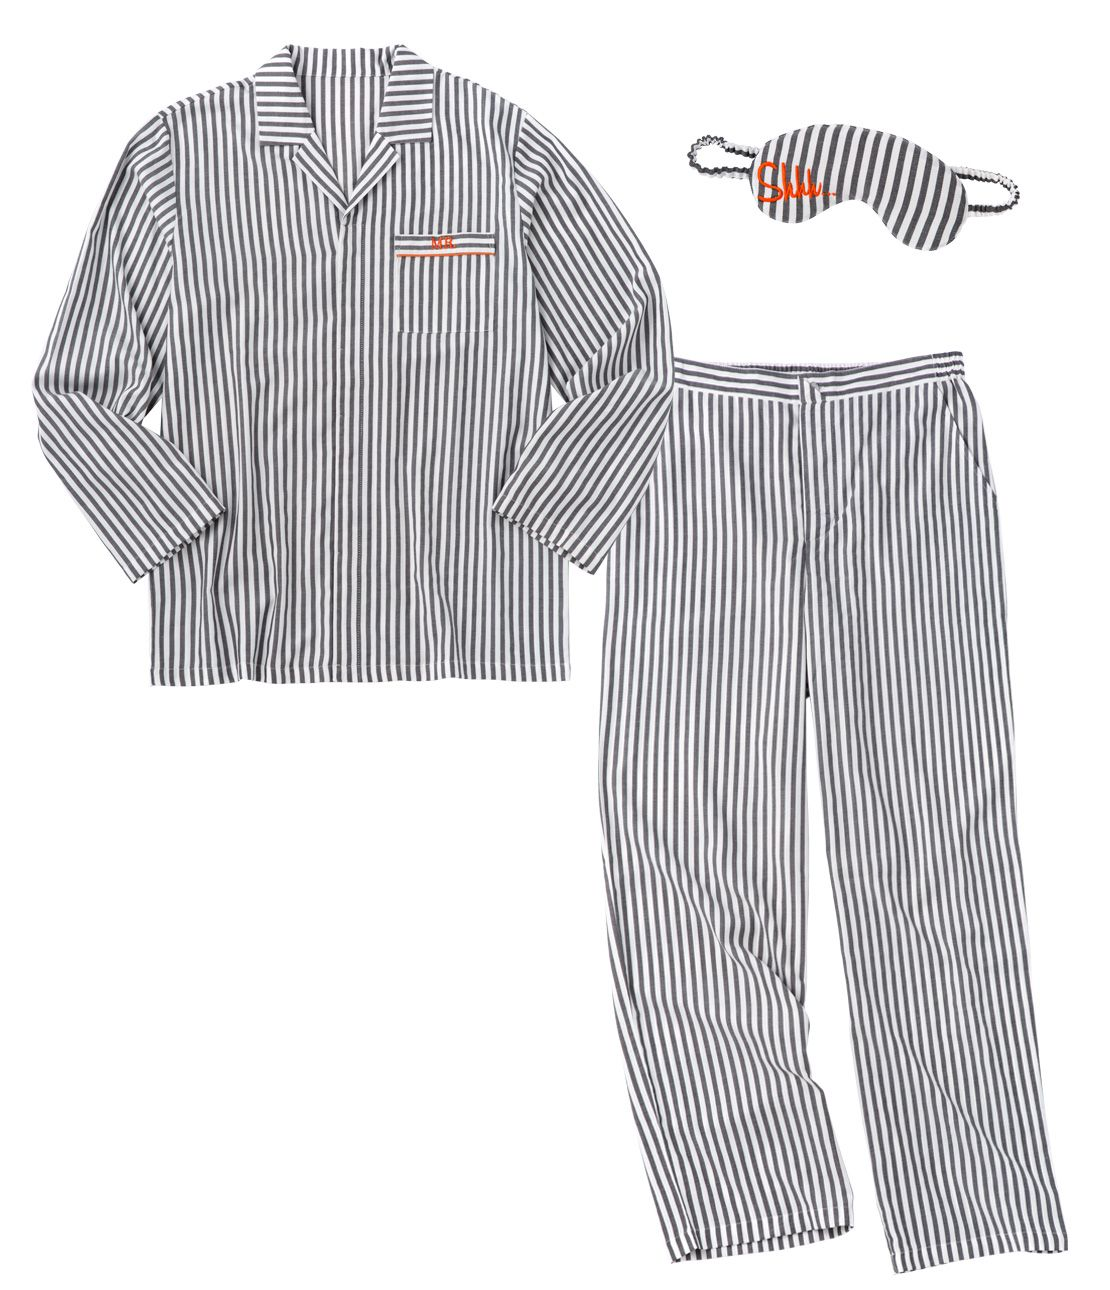 Men's shirt pajamas set